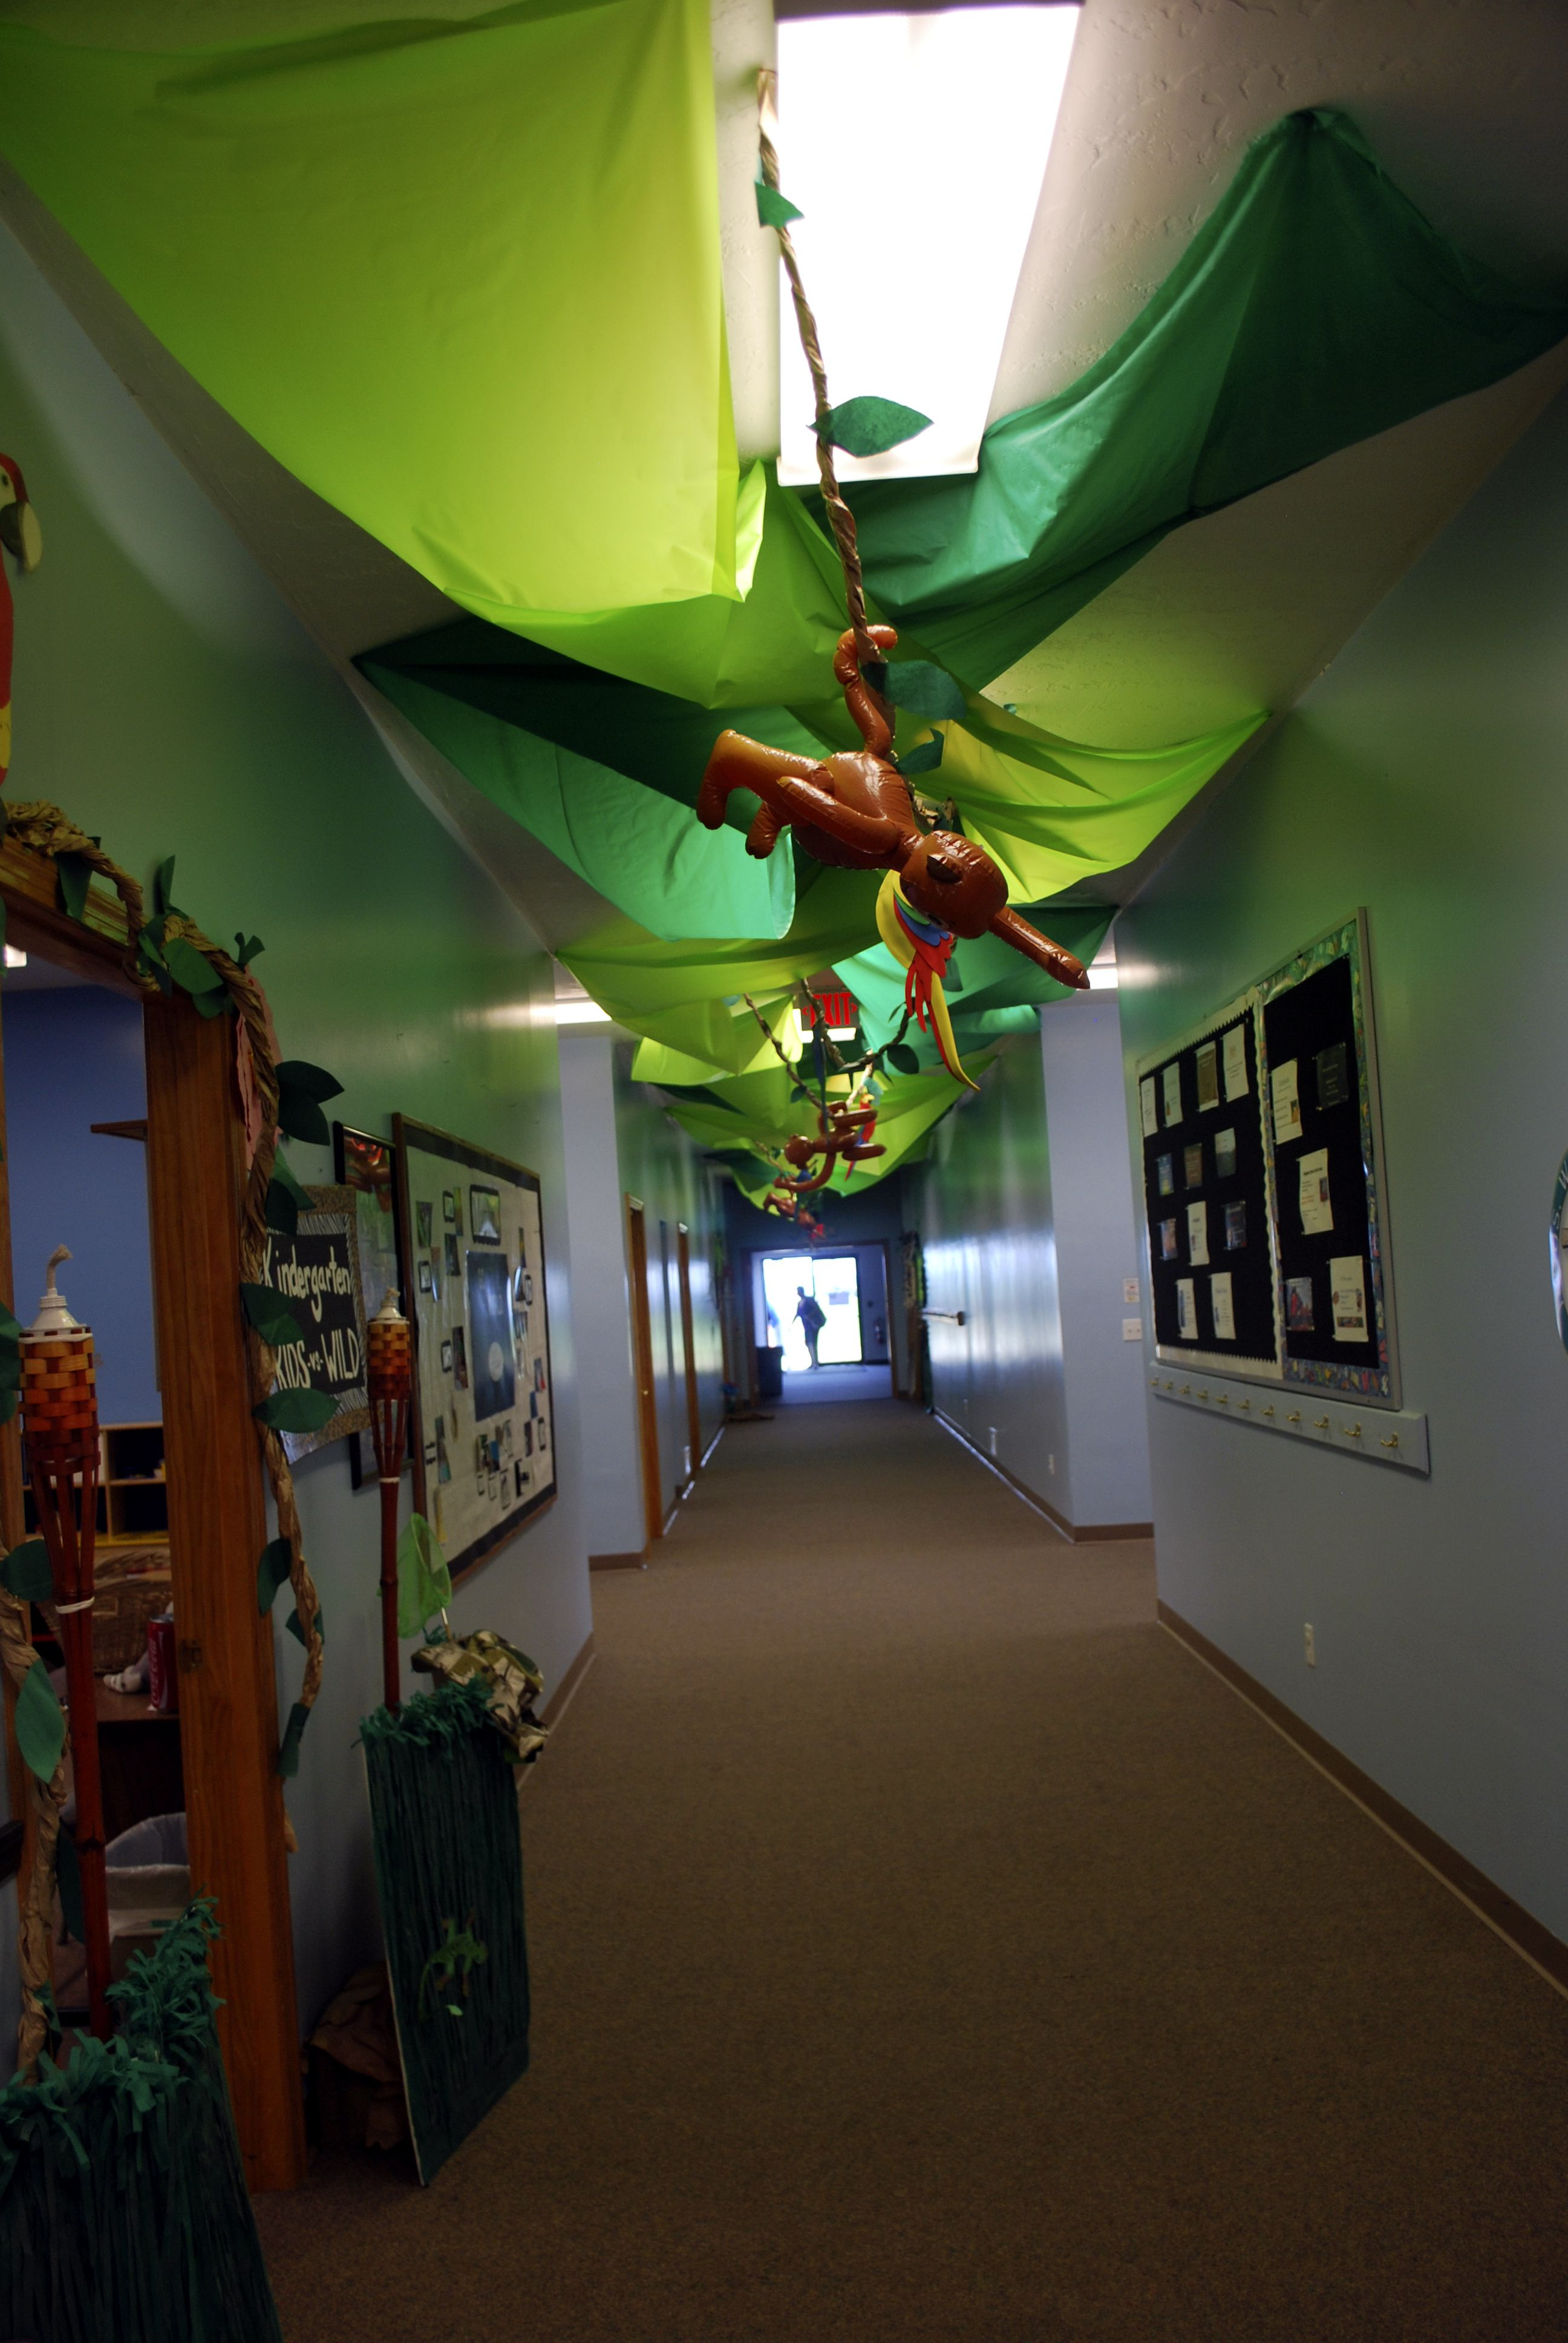 Cheap Green Fabric Or Plastic Tablecloths On The Ceiling